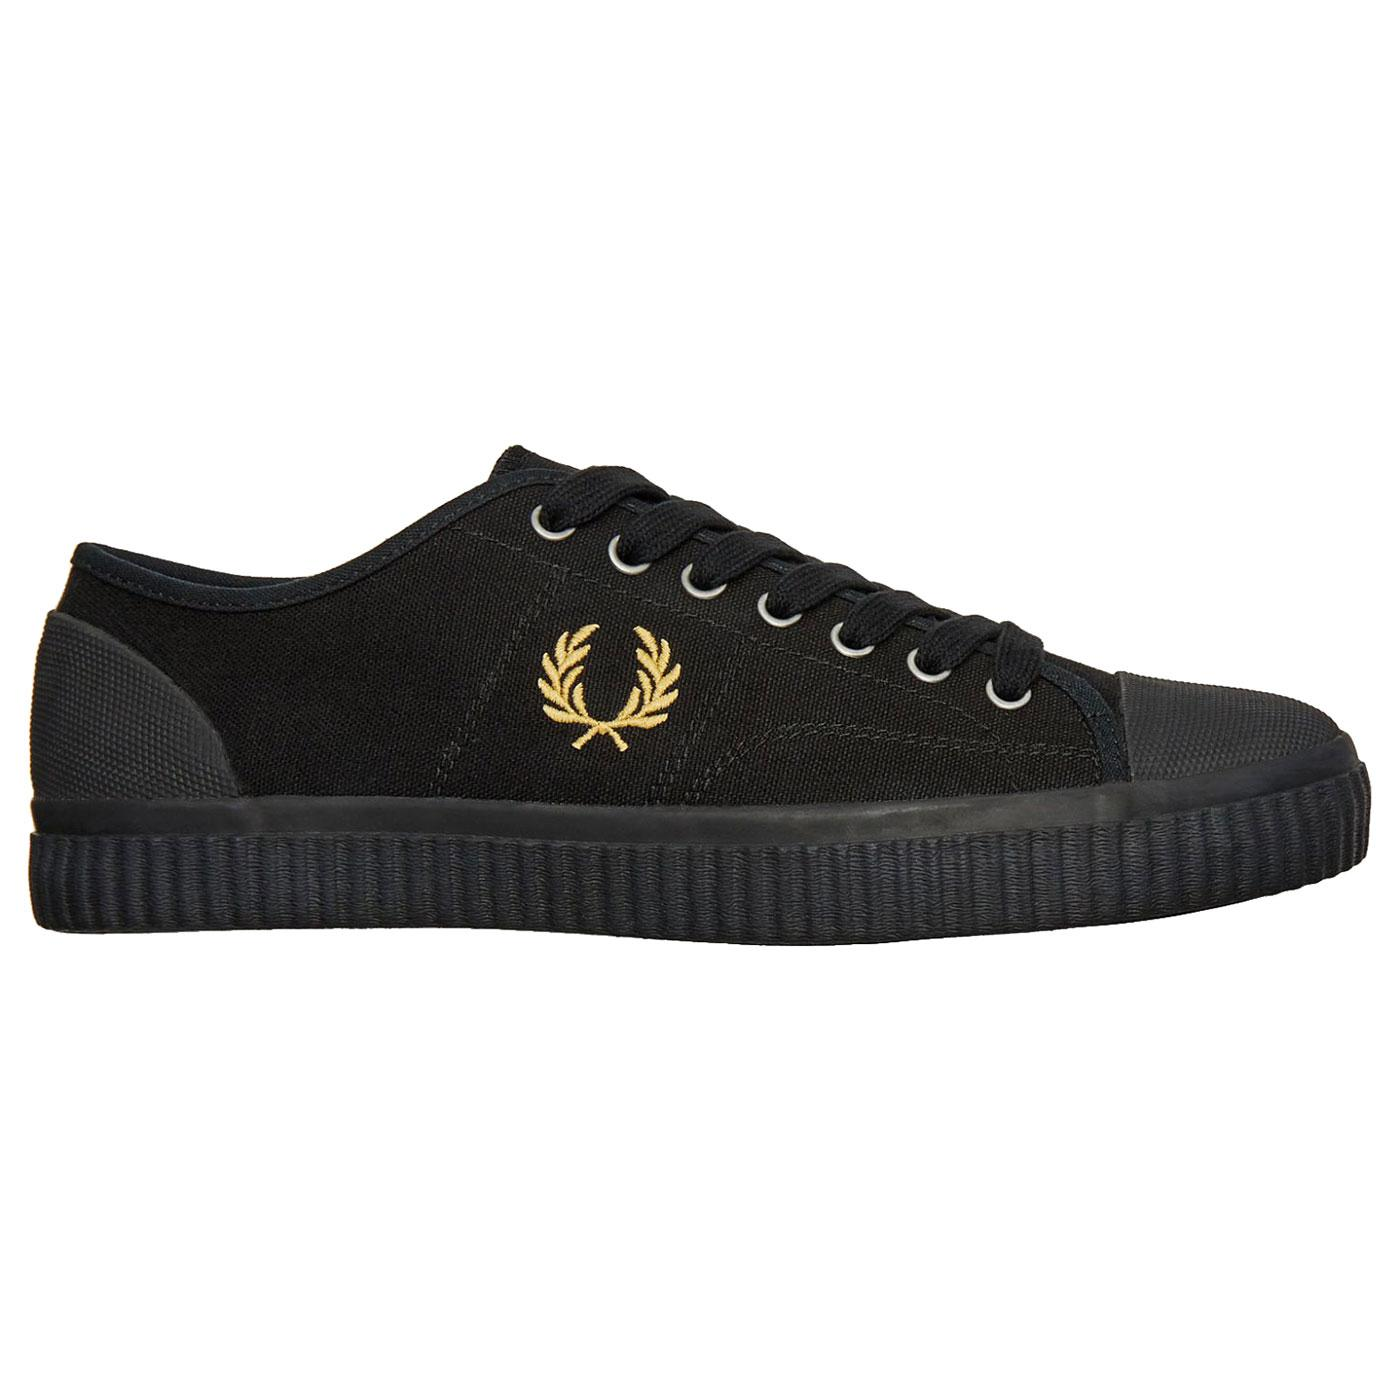 Hughes Low FRED PERRY Men's Canvas Trainers BLACK